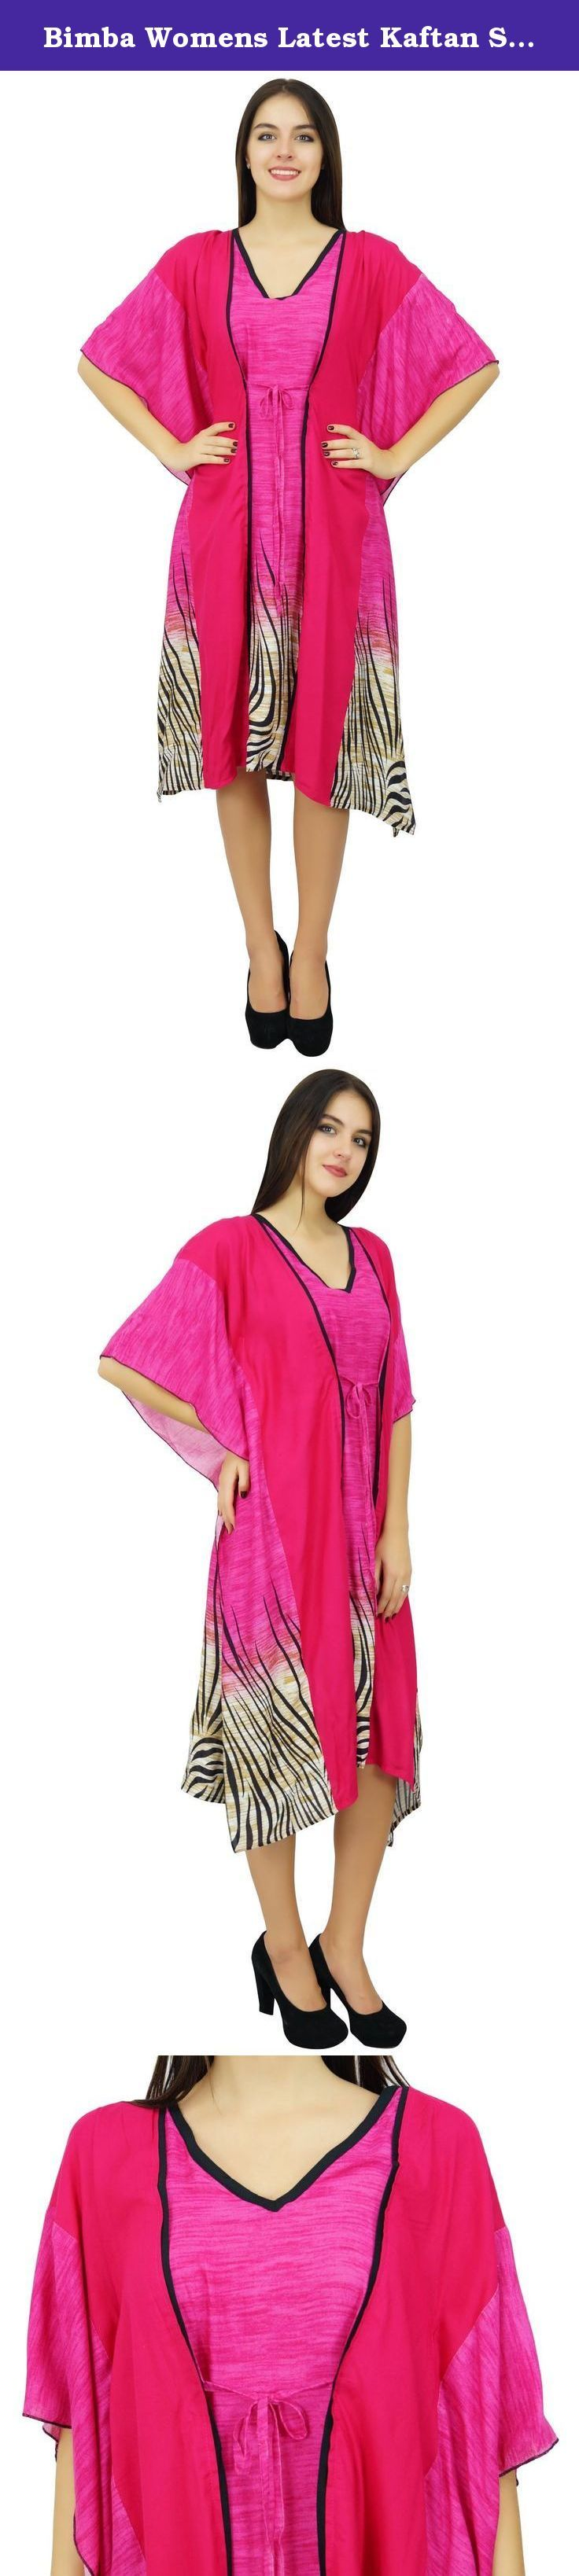 Bimba Womens Latest Kaftan Swimsuit Cover Up Pink Beach Caftan Knee Length Dress. Pink in Color this kaftan is made from Rayon fabric which is very soft and comfortable on skin. The kimono sleeves and and beautiful Animal print makes the kaftan very much classy. Perfect as beach coverup or sleep wear. Sale For: 1 Kaftan Material: Rayon Kaftan Length:44-inches Color: Pink Model Height: 175 Cm Care: * Dry-clean or Hand Wash in cold with mild detergent * Air dry only * Iron it while slightly...